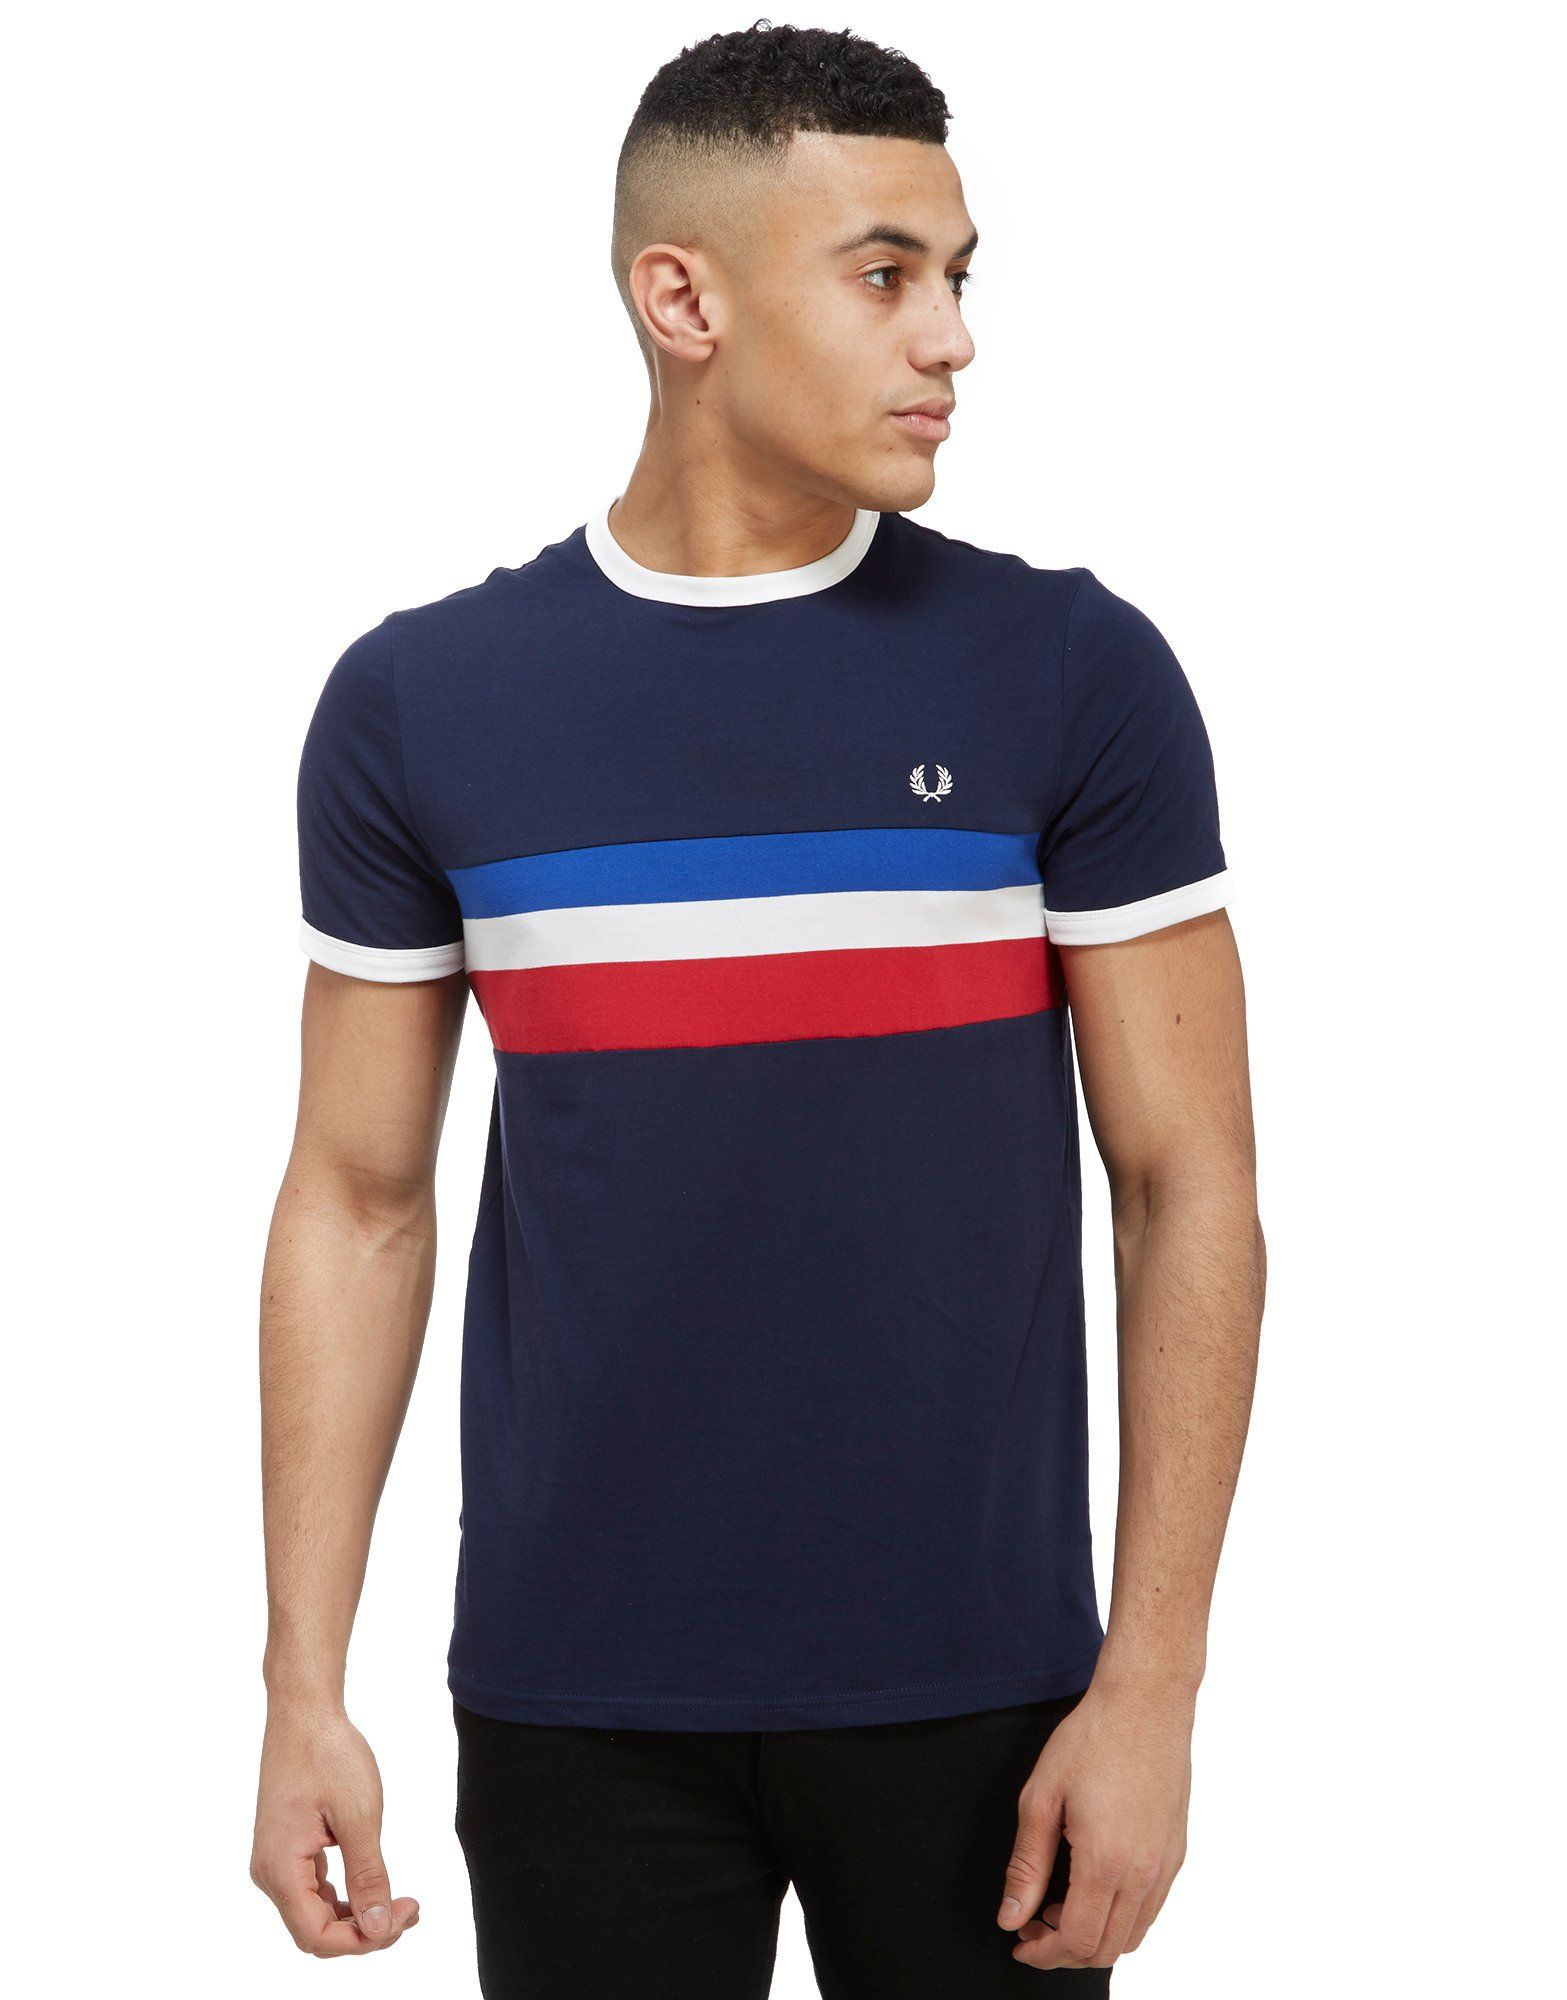 Fred Perry Striped Panel T Shirt Jd Sports